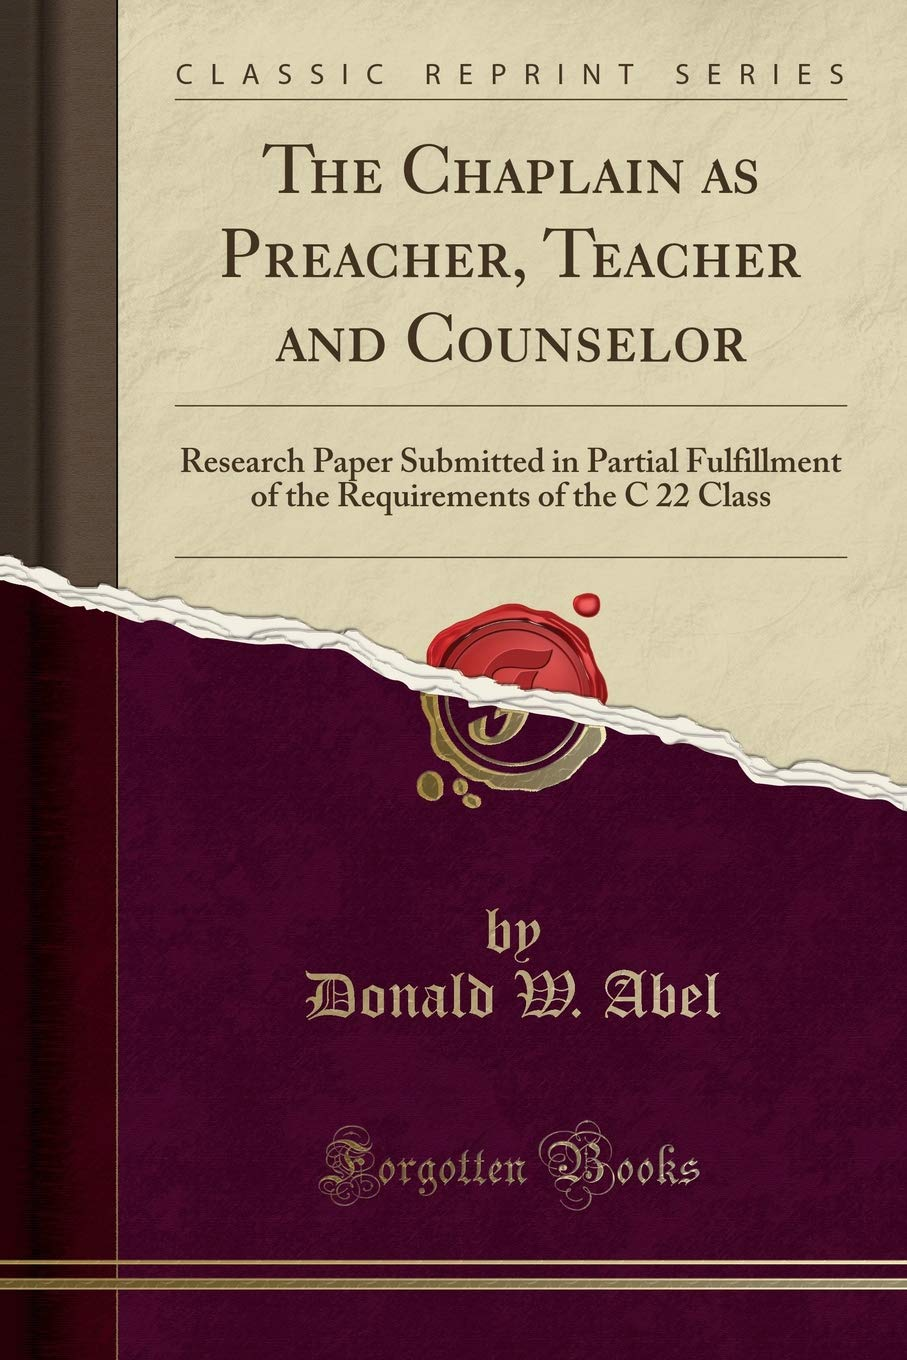 The Chaplain as Preacher, Teacher and Counselor: Research Paper Submitted in Partial Fulfillment of the Requirements of the C 22 Class (Classic Reprint) ebook